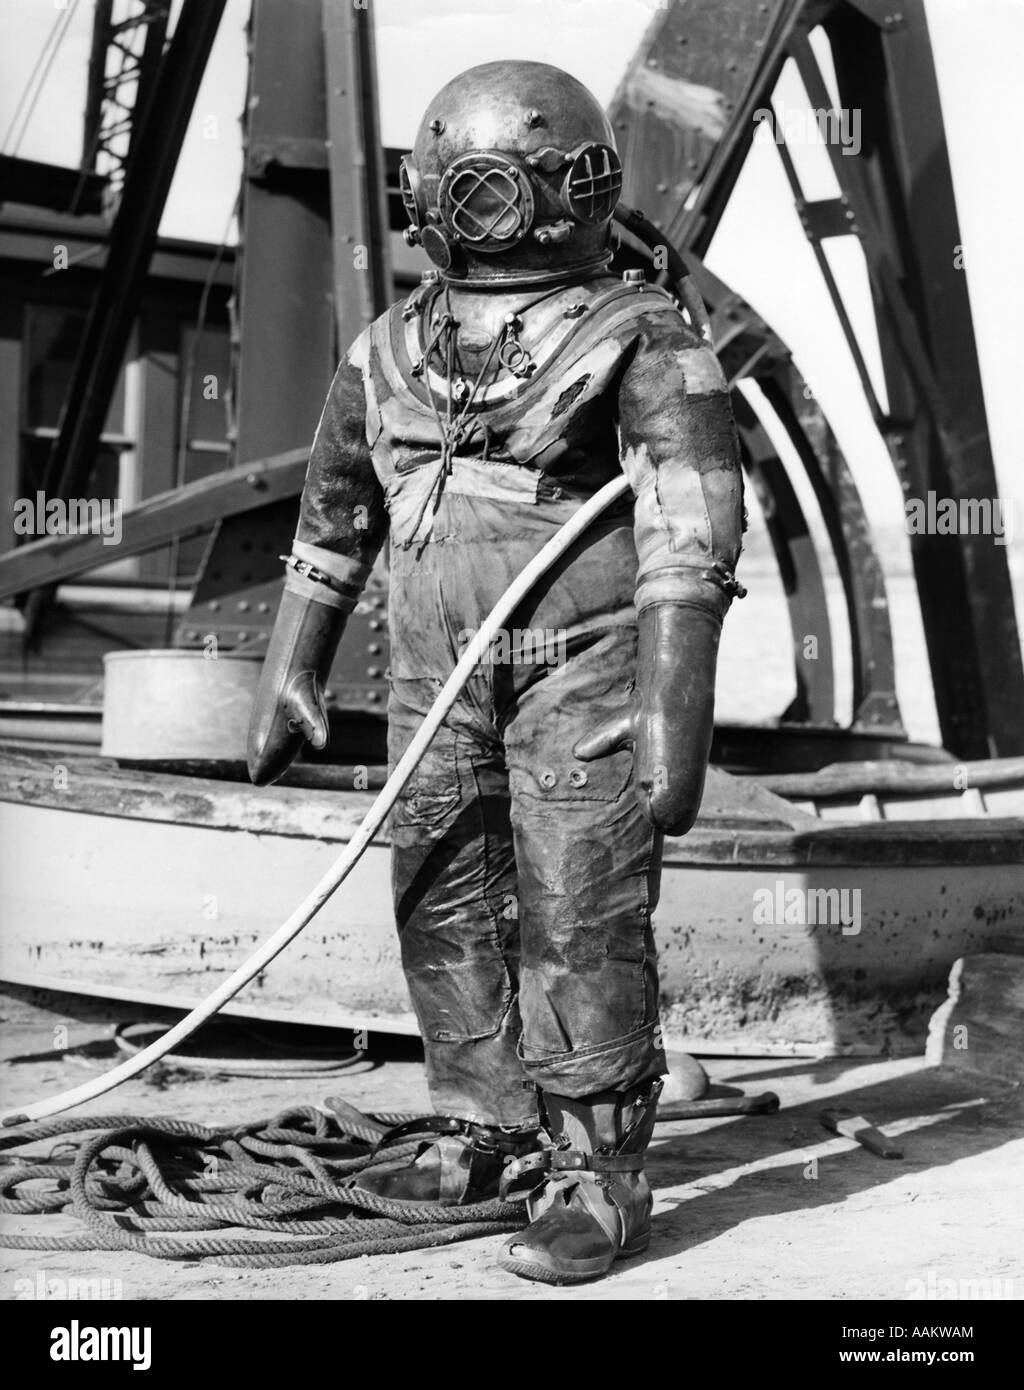 1930s 1940s FULL FIGURE OF MAN IN UNDERWATER HARD HAT DEEP SEA DIVING SUIT Stock Photo